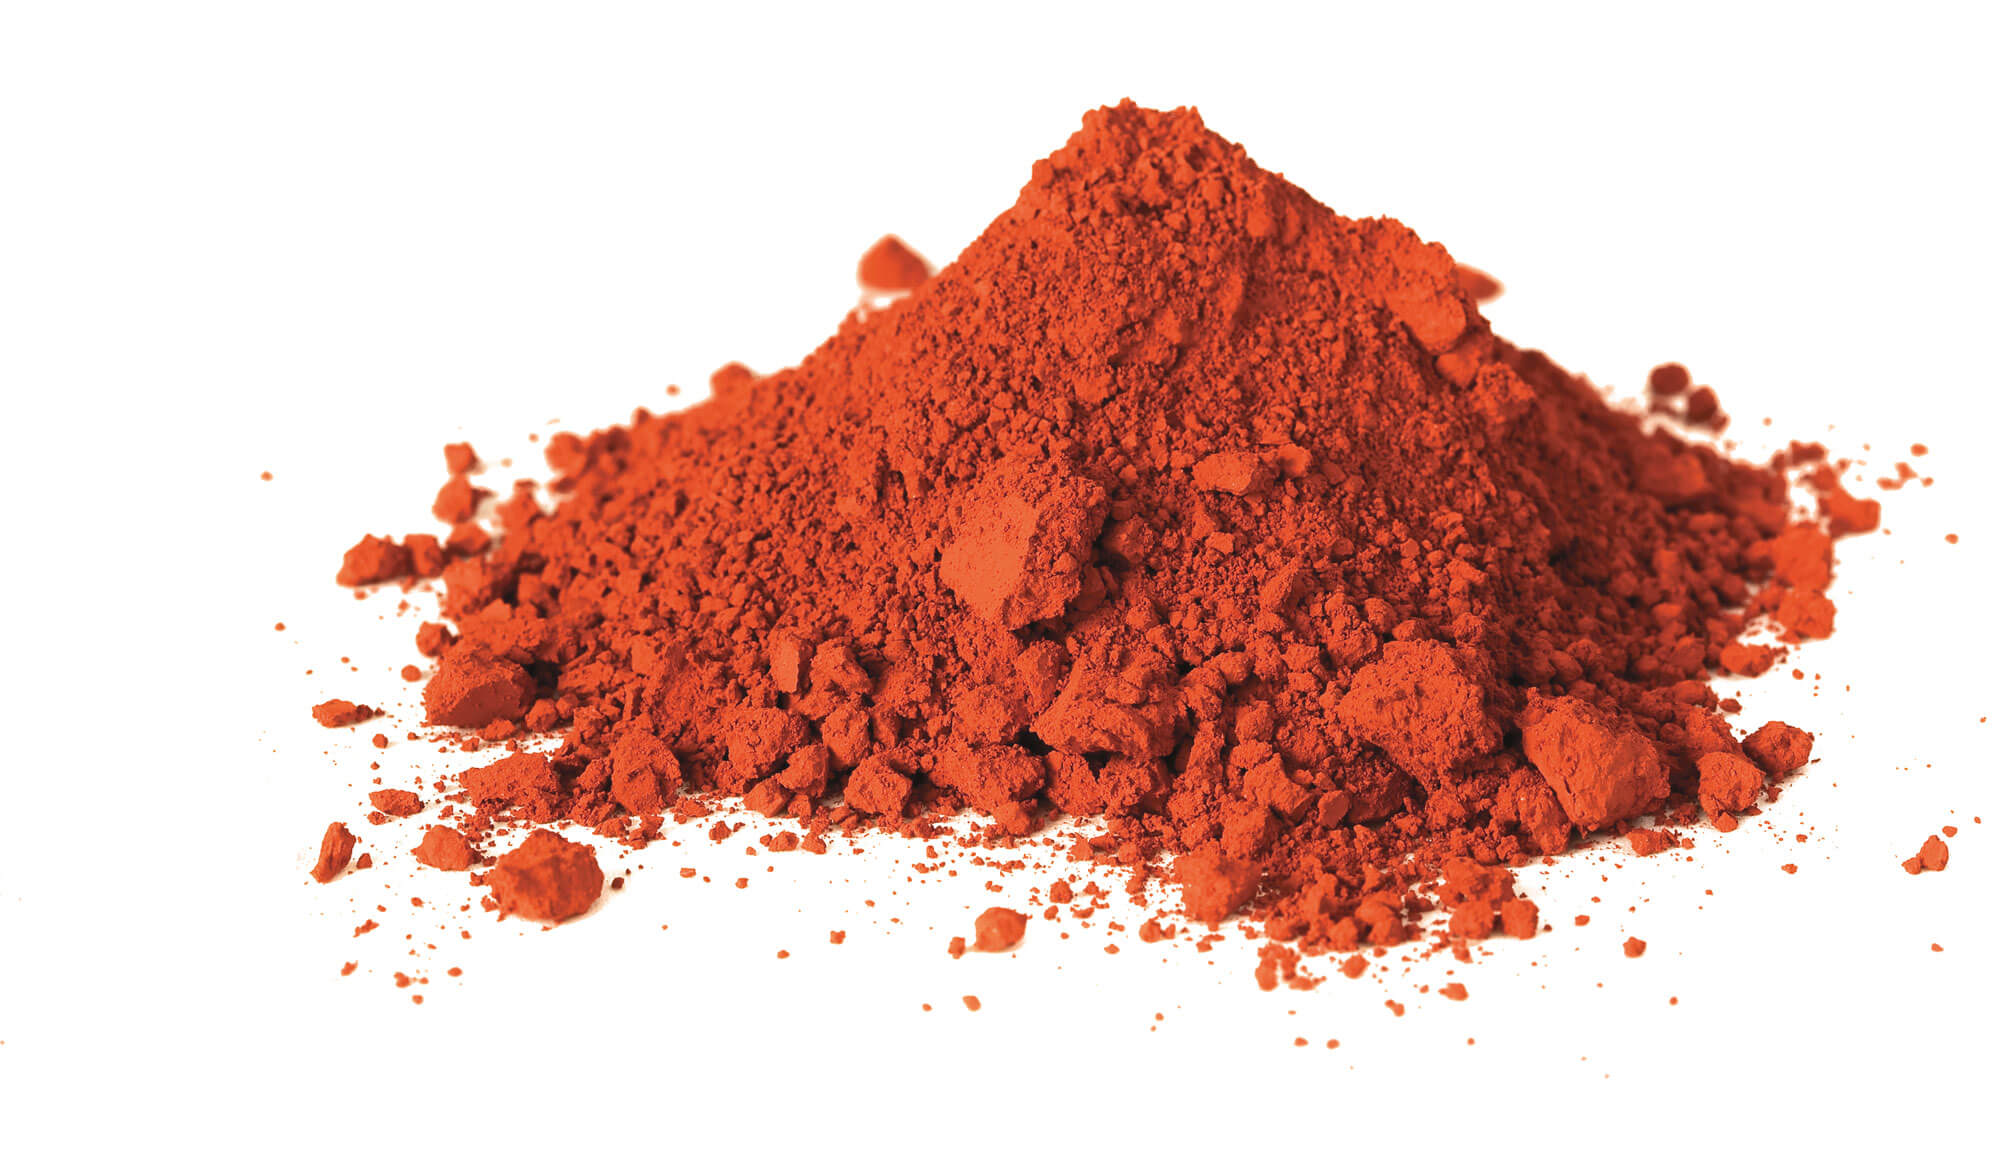 Ocre pigment